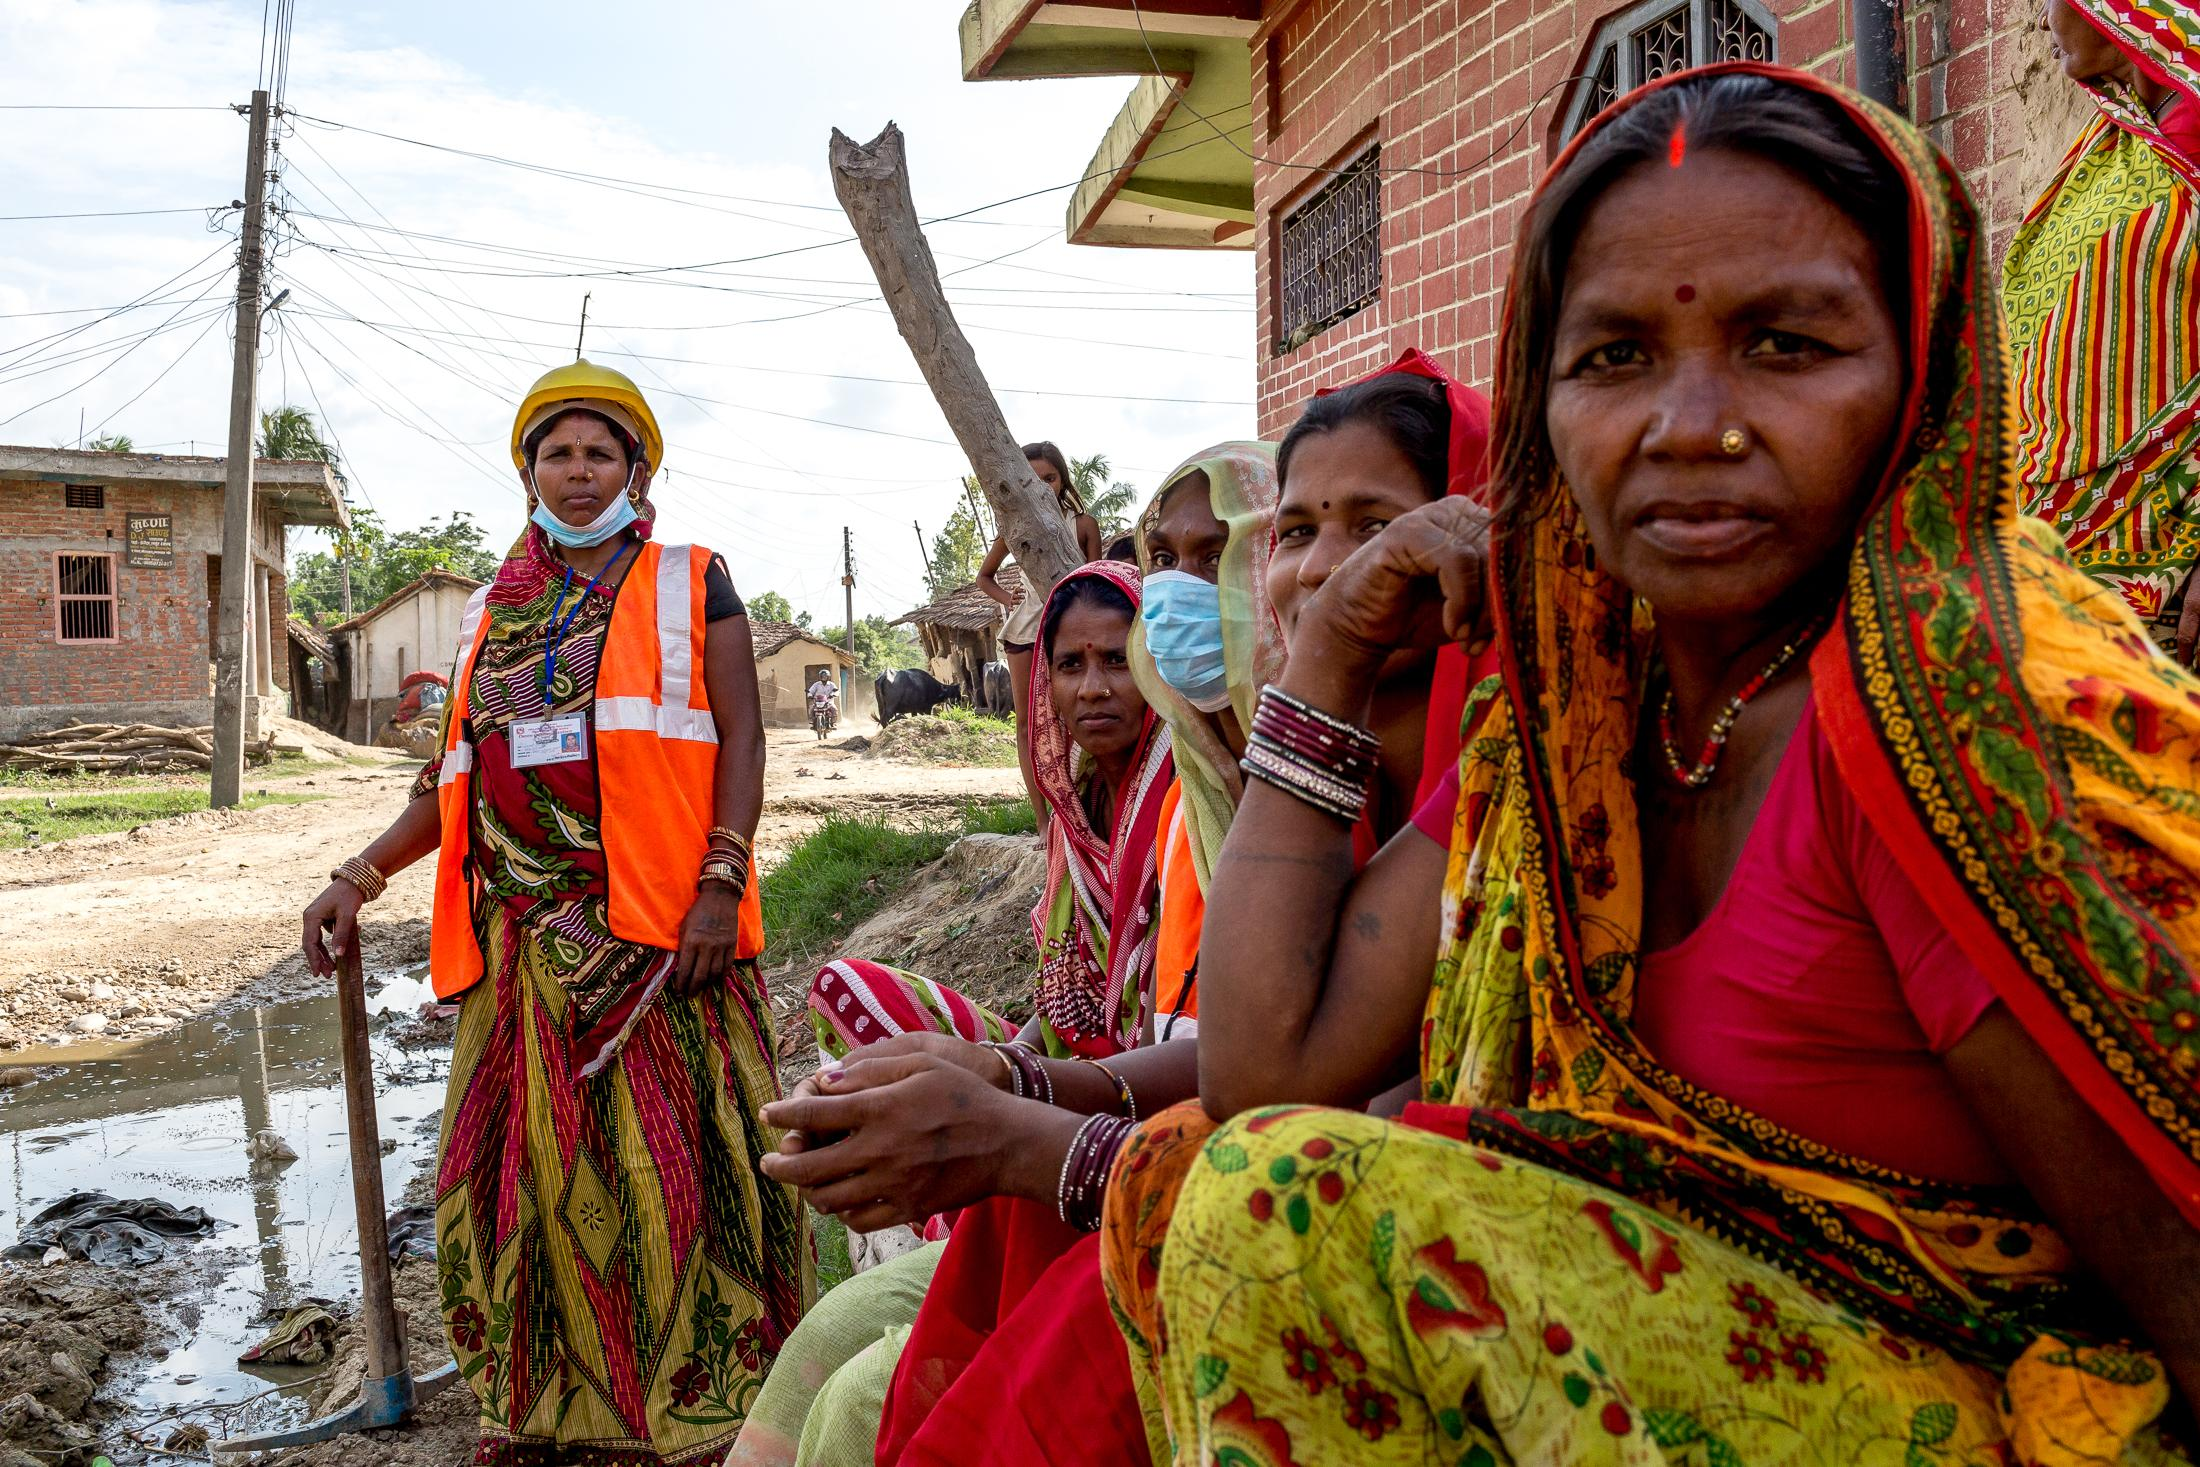 JANAKPUR, NEPAL - JULY 23, 2015: A group of Maithil women sits while chatting to other Maithil women during their break working as road maintenance staff in a rural area on July 23, 2015 near Janakpur, Nepal. Traditionally, women from the Maithil community have almost never worked in official positions or in the formal economy being economic dependants in their families - first as daughters, then as wives and mothers, and often as widows. Their labor is in service to their husbands' families. But for years, Maithili women have been making strides to gain independence, helped by projects aimed at providing them with income-earning opportunities outside the home. Photo: © Omar Havana for ILO